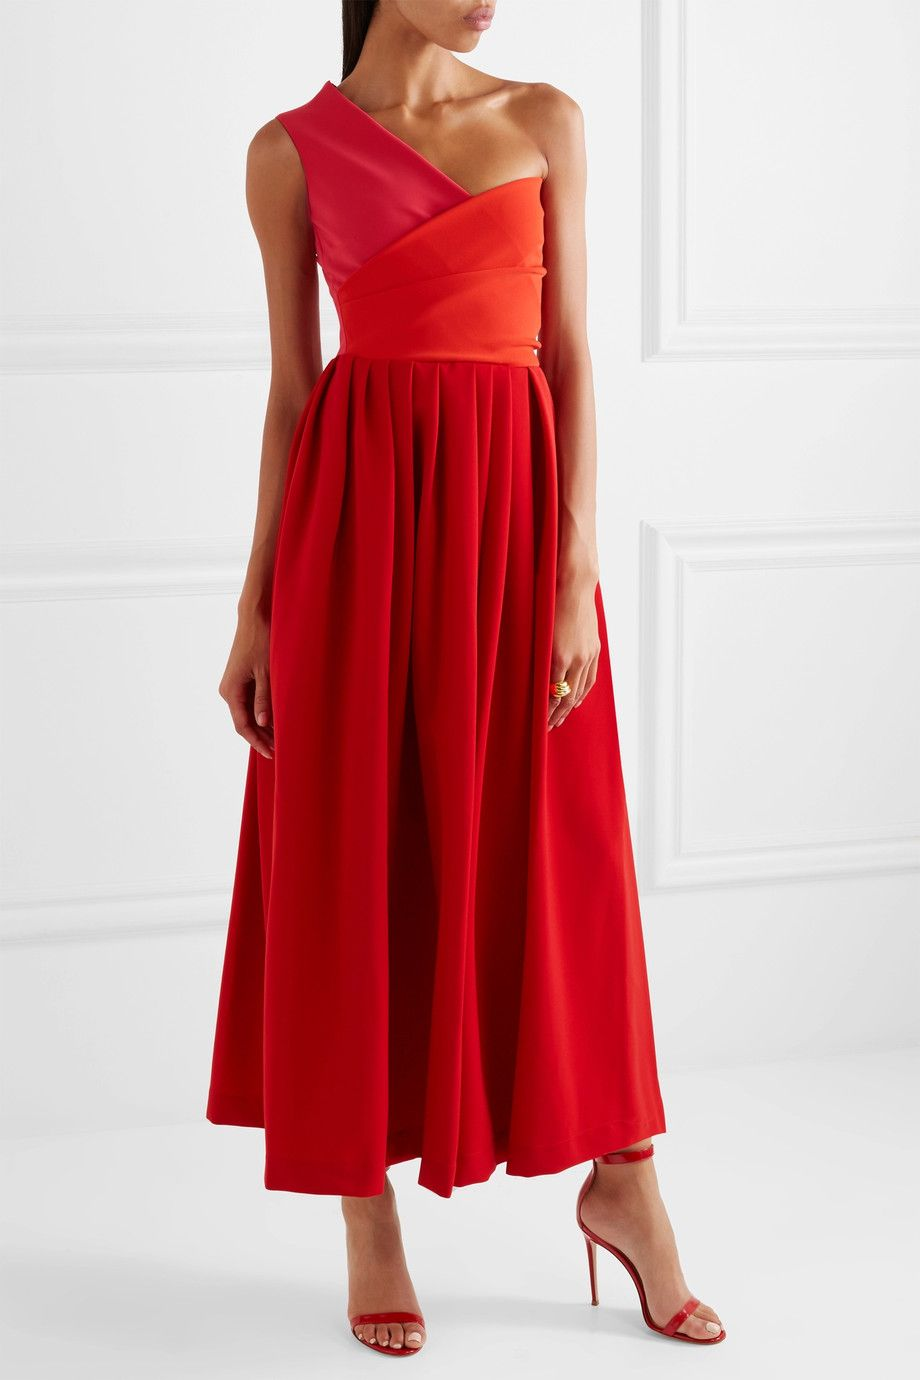 Dresses to wear to a wedding as a guest in april  Preen by Thornton Bregazzi  April oneshoulder cady midi dress